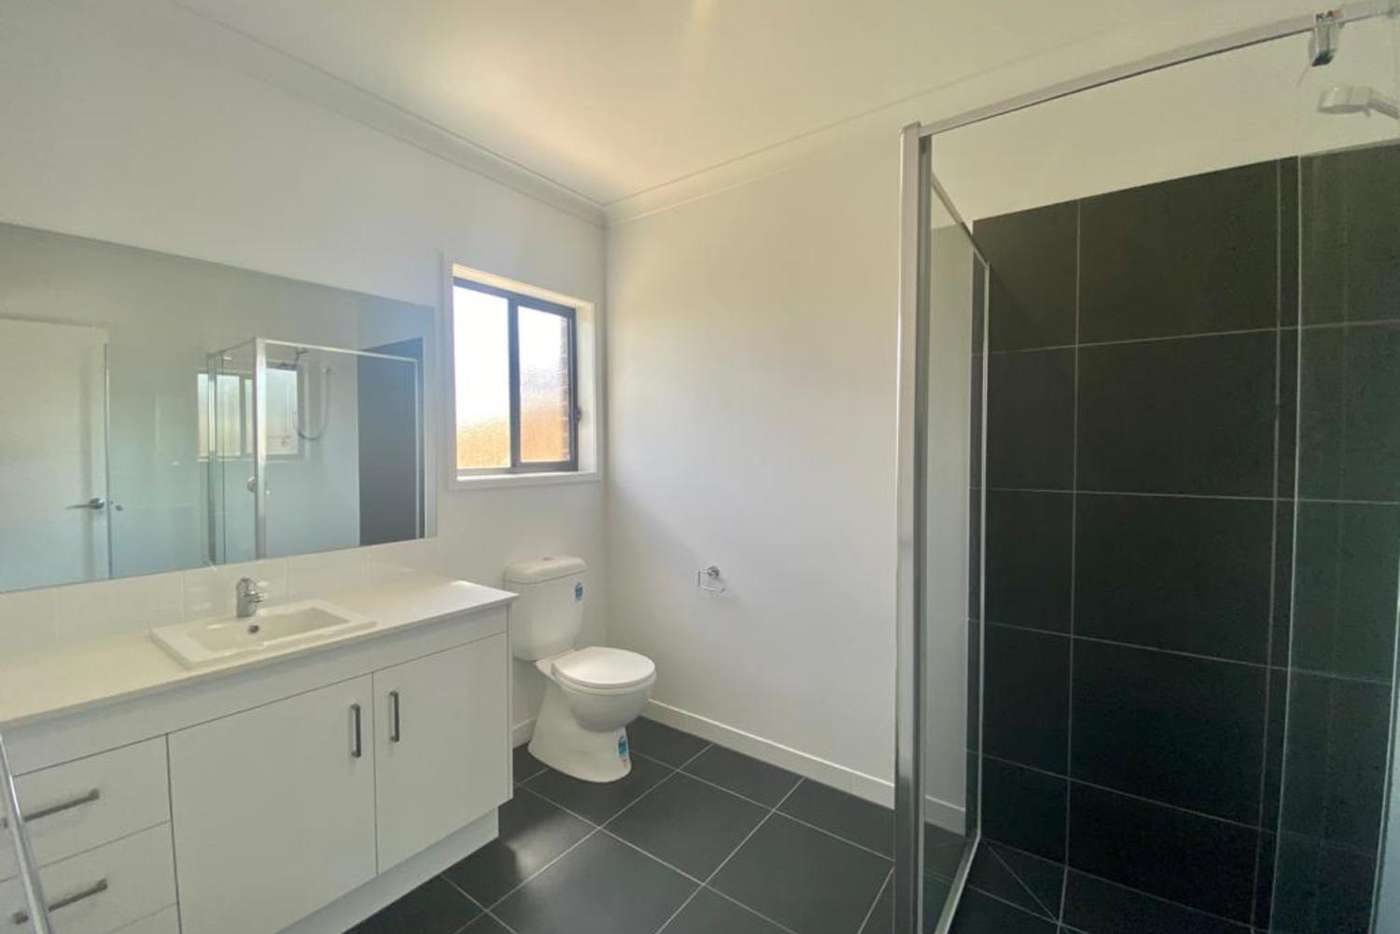 Seventh view of Homely house listing, 7 Dajarra Avenue, Wyndham Vale VIC 3024